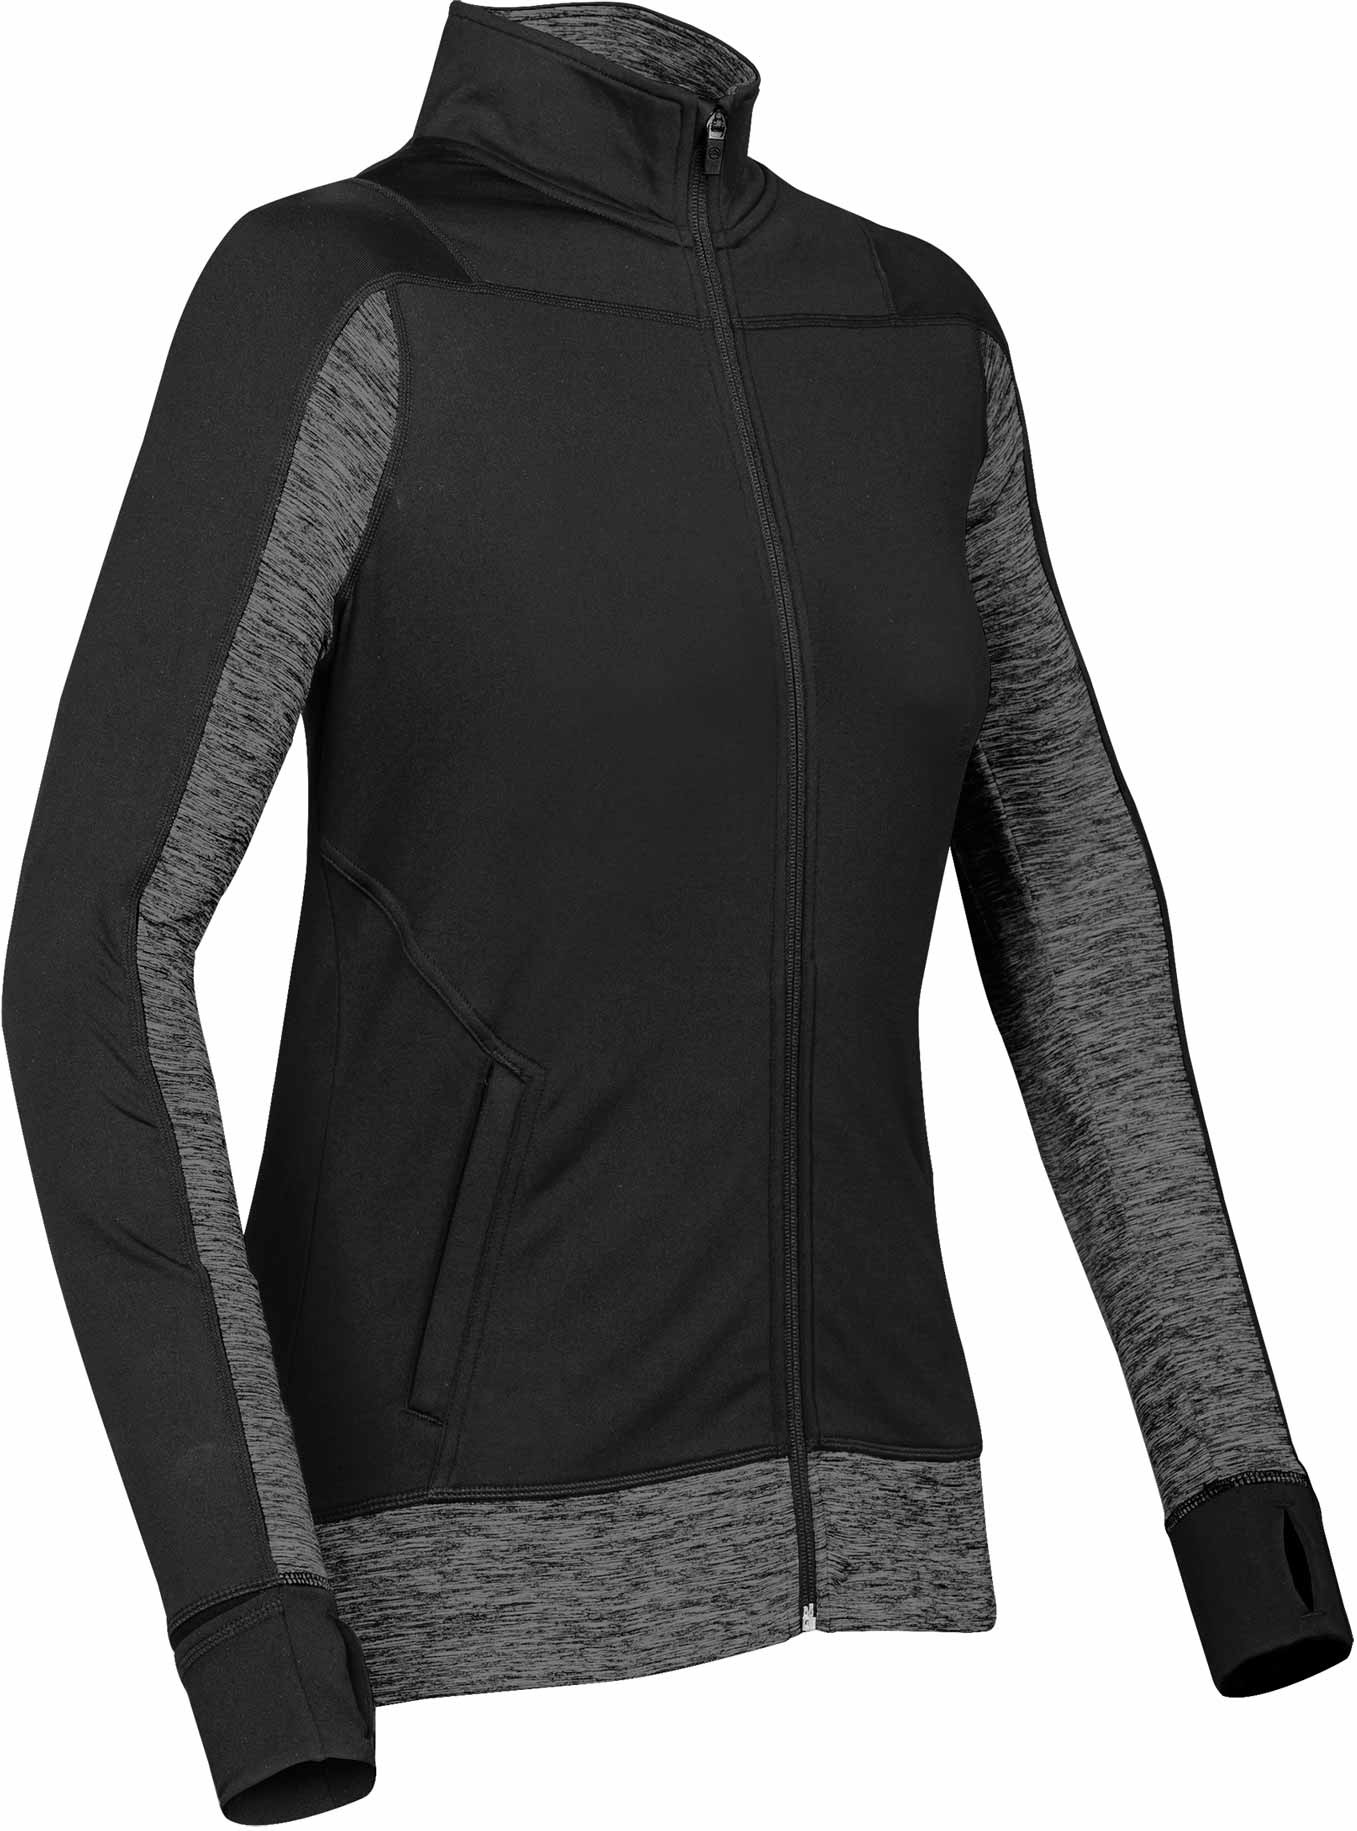 Stormtech Women's Lotus Full Zip